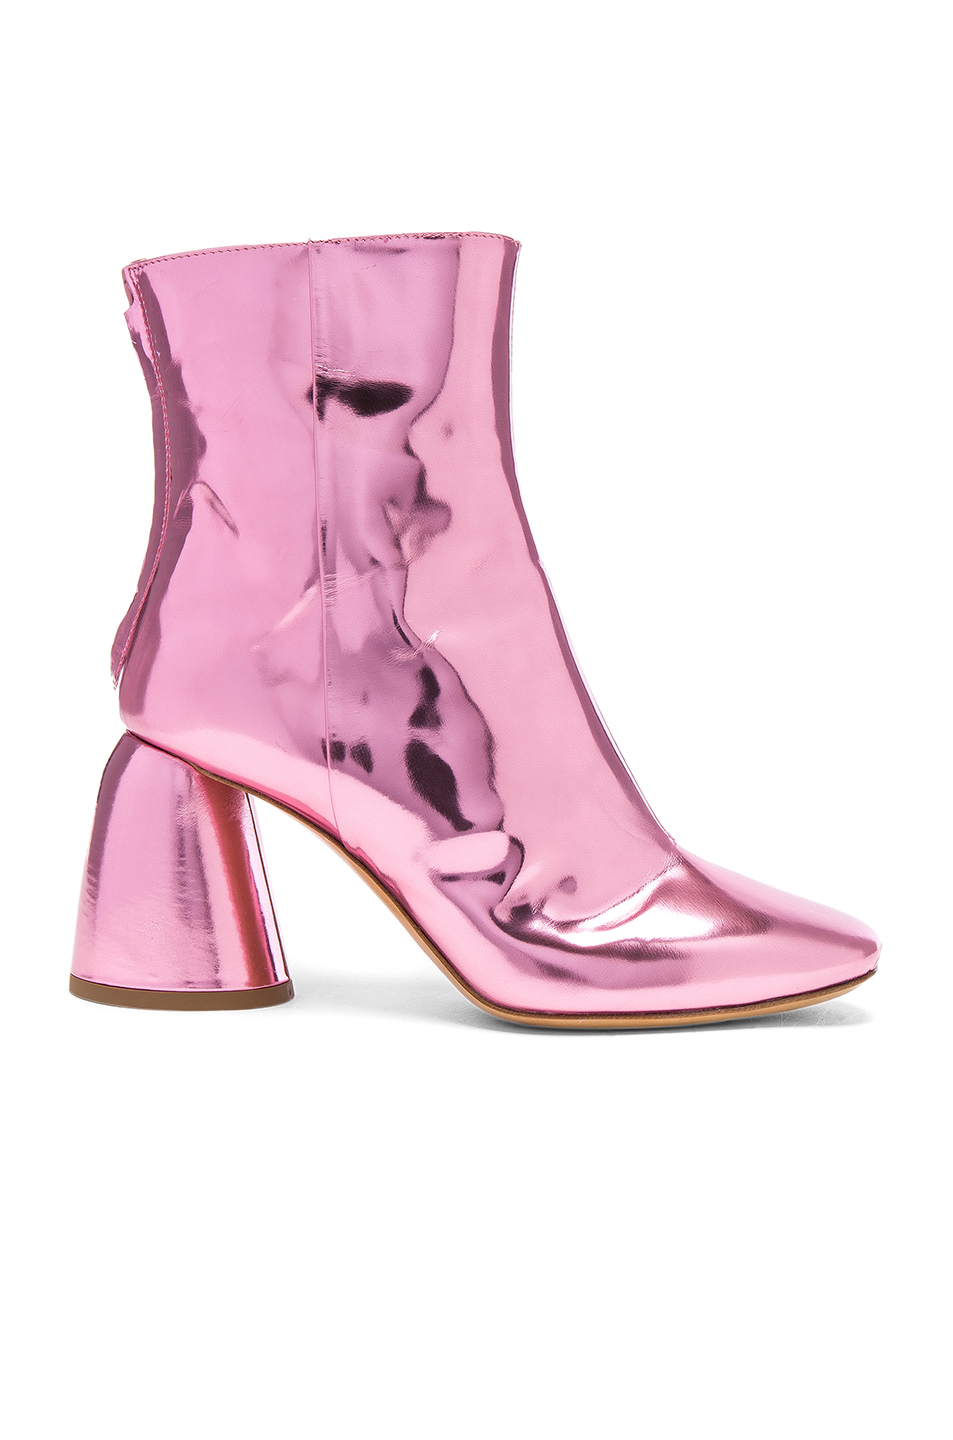 Ellery Patent Leather Jezebels Boots in Metallics,Pink